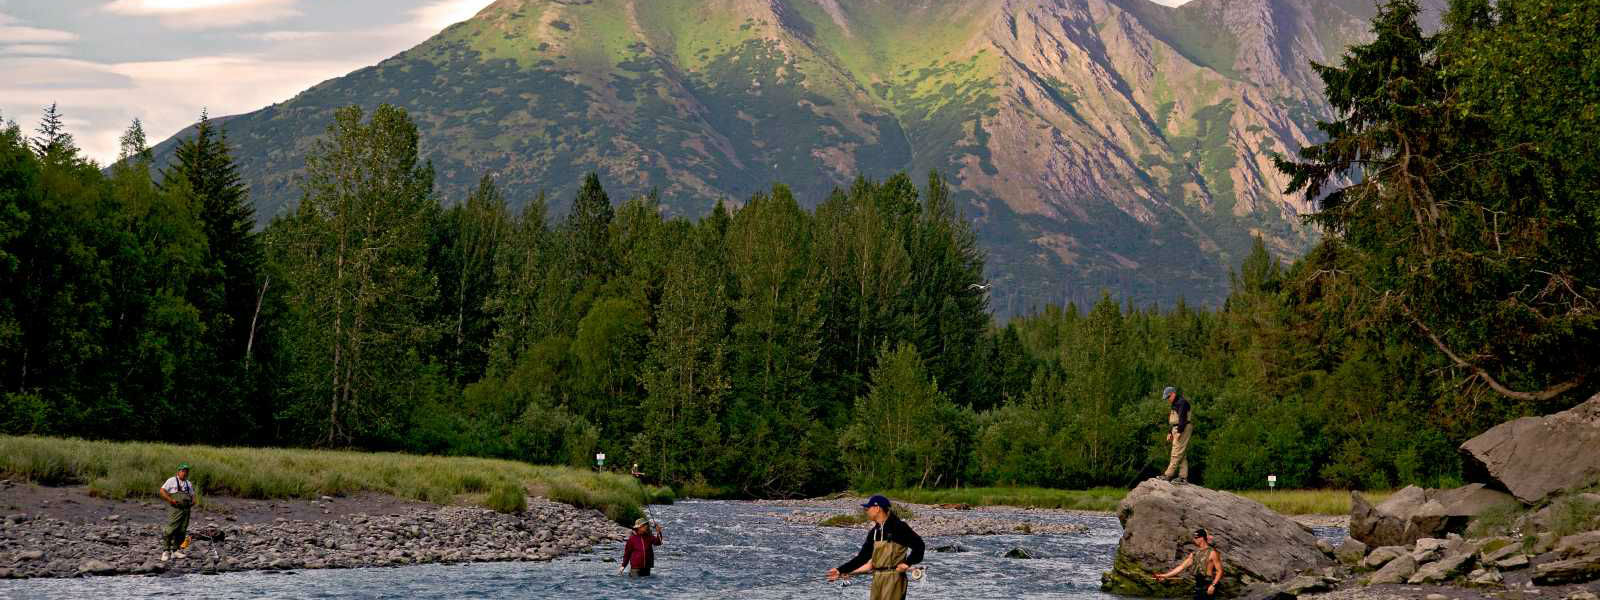 Ask the Pro's: Late September Fishing Options Within 2 Hours of Anchorage